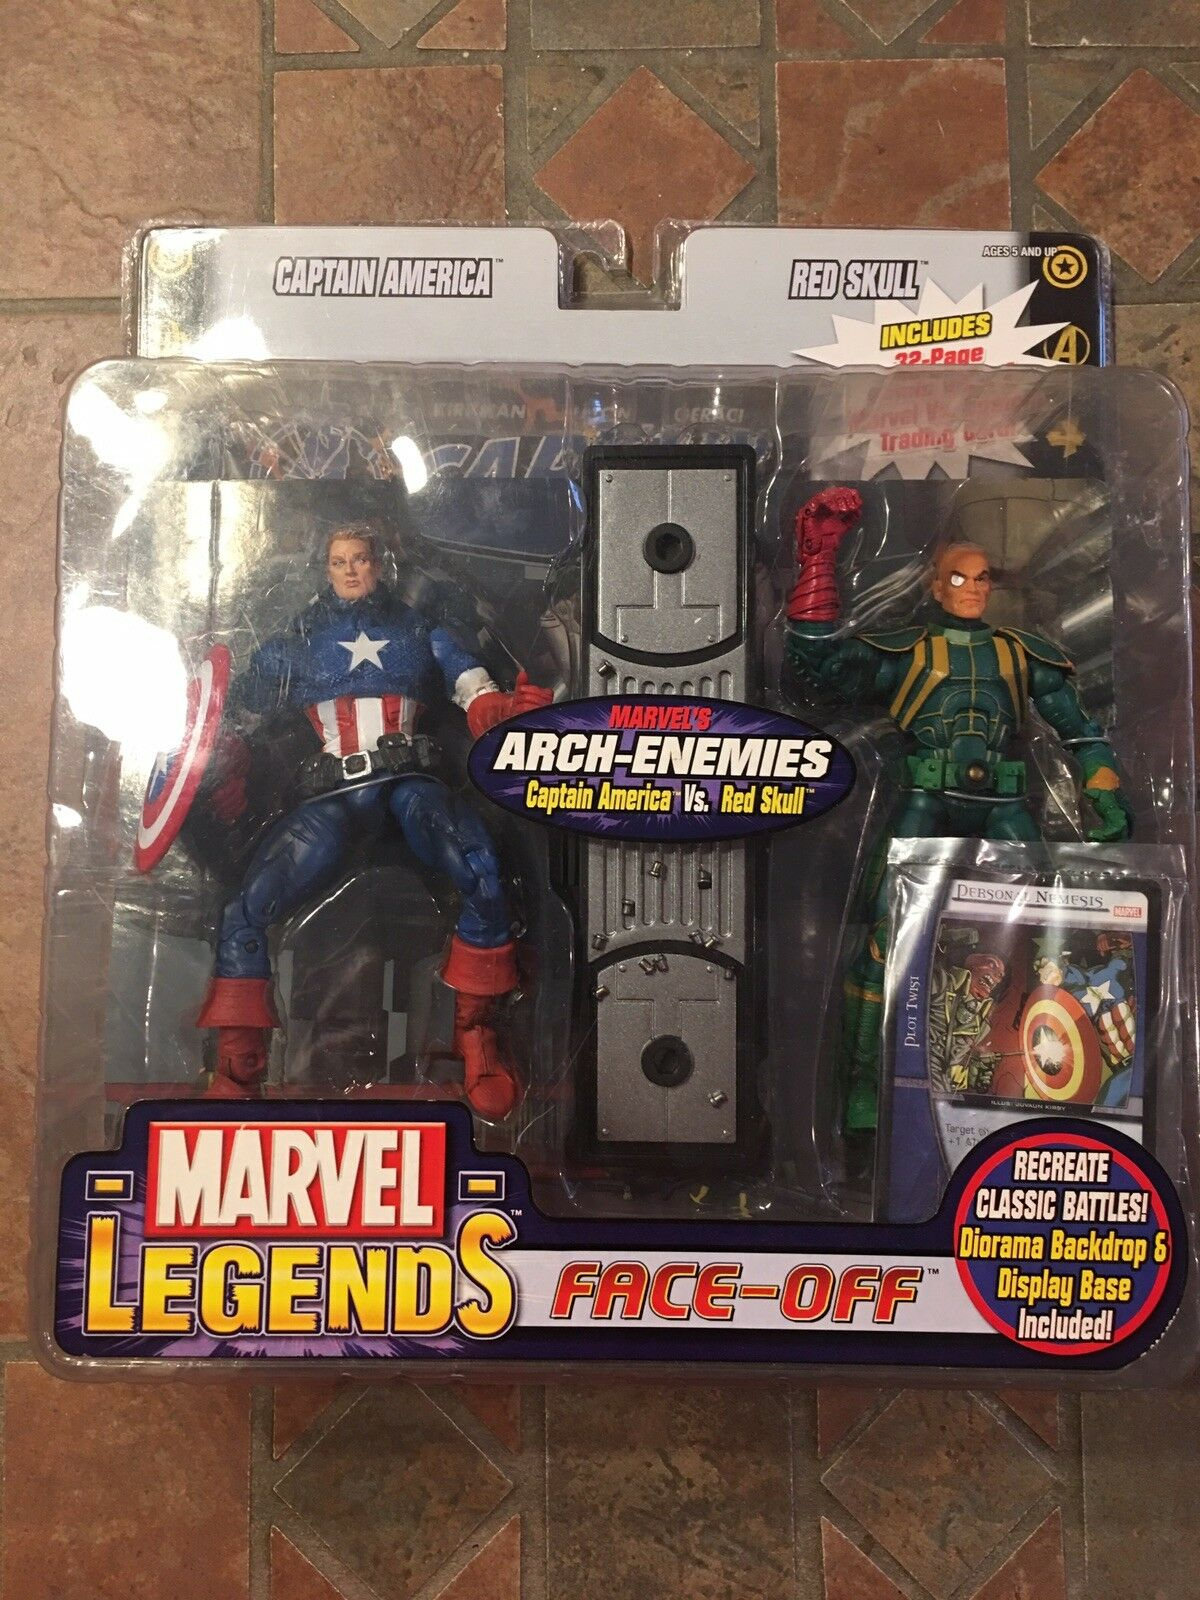 Marvel Legends Capitan Capitan Capitan America Vs Barone Von Strucker Face-Off fef241